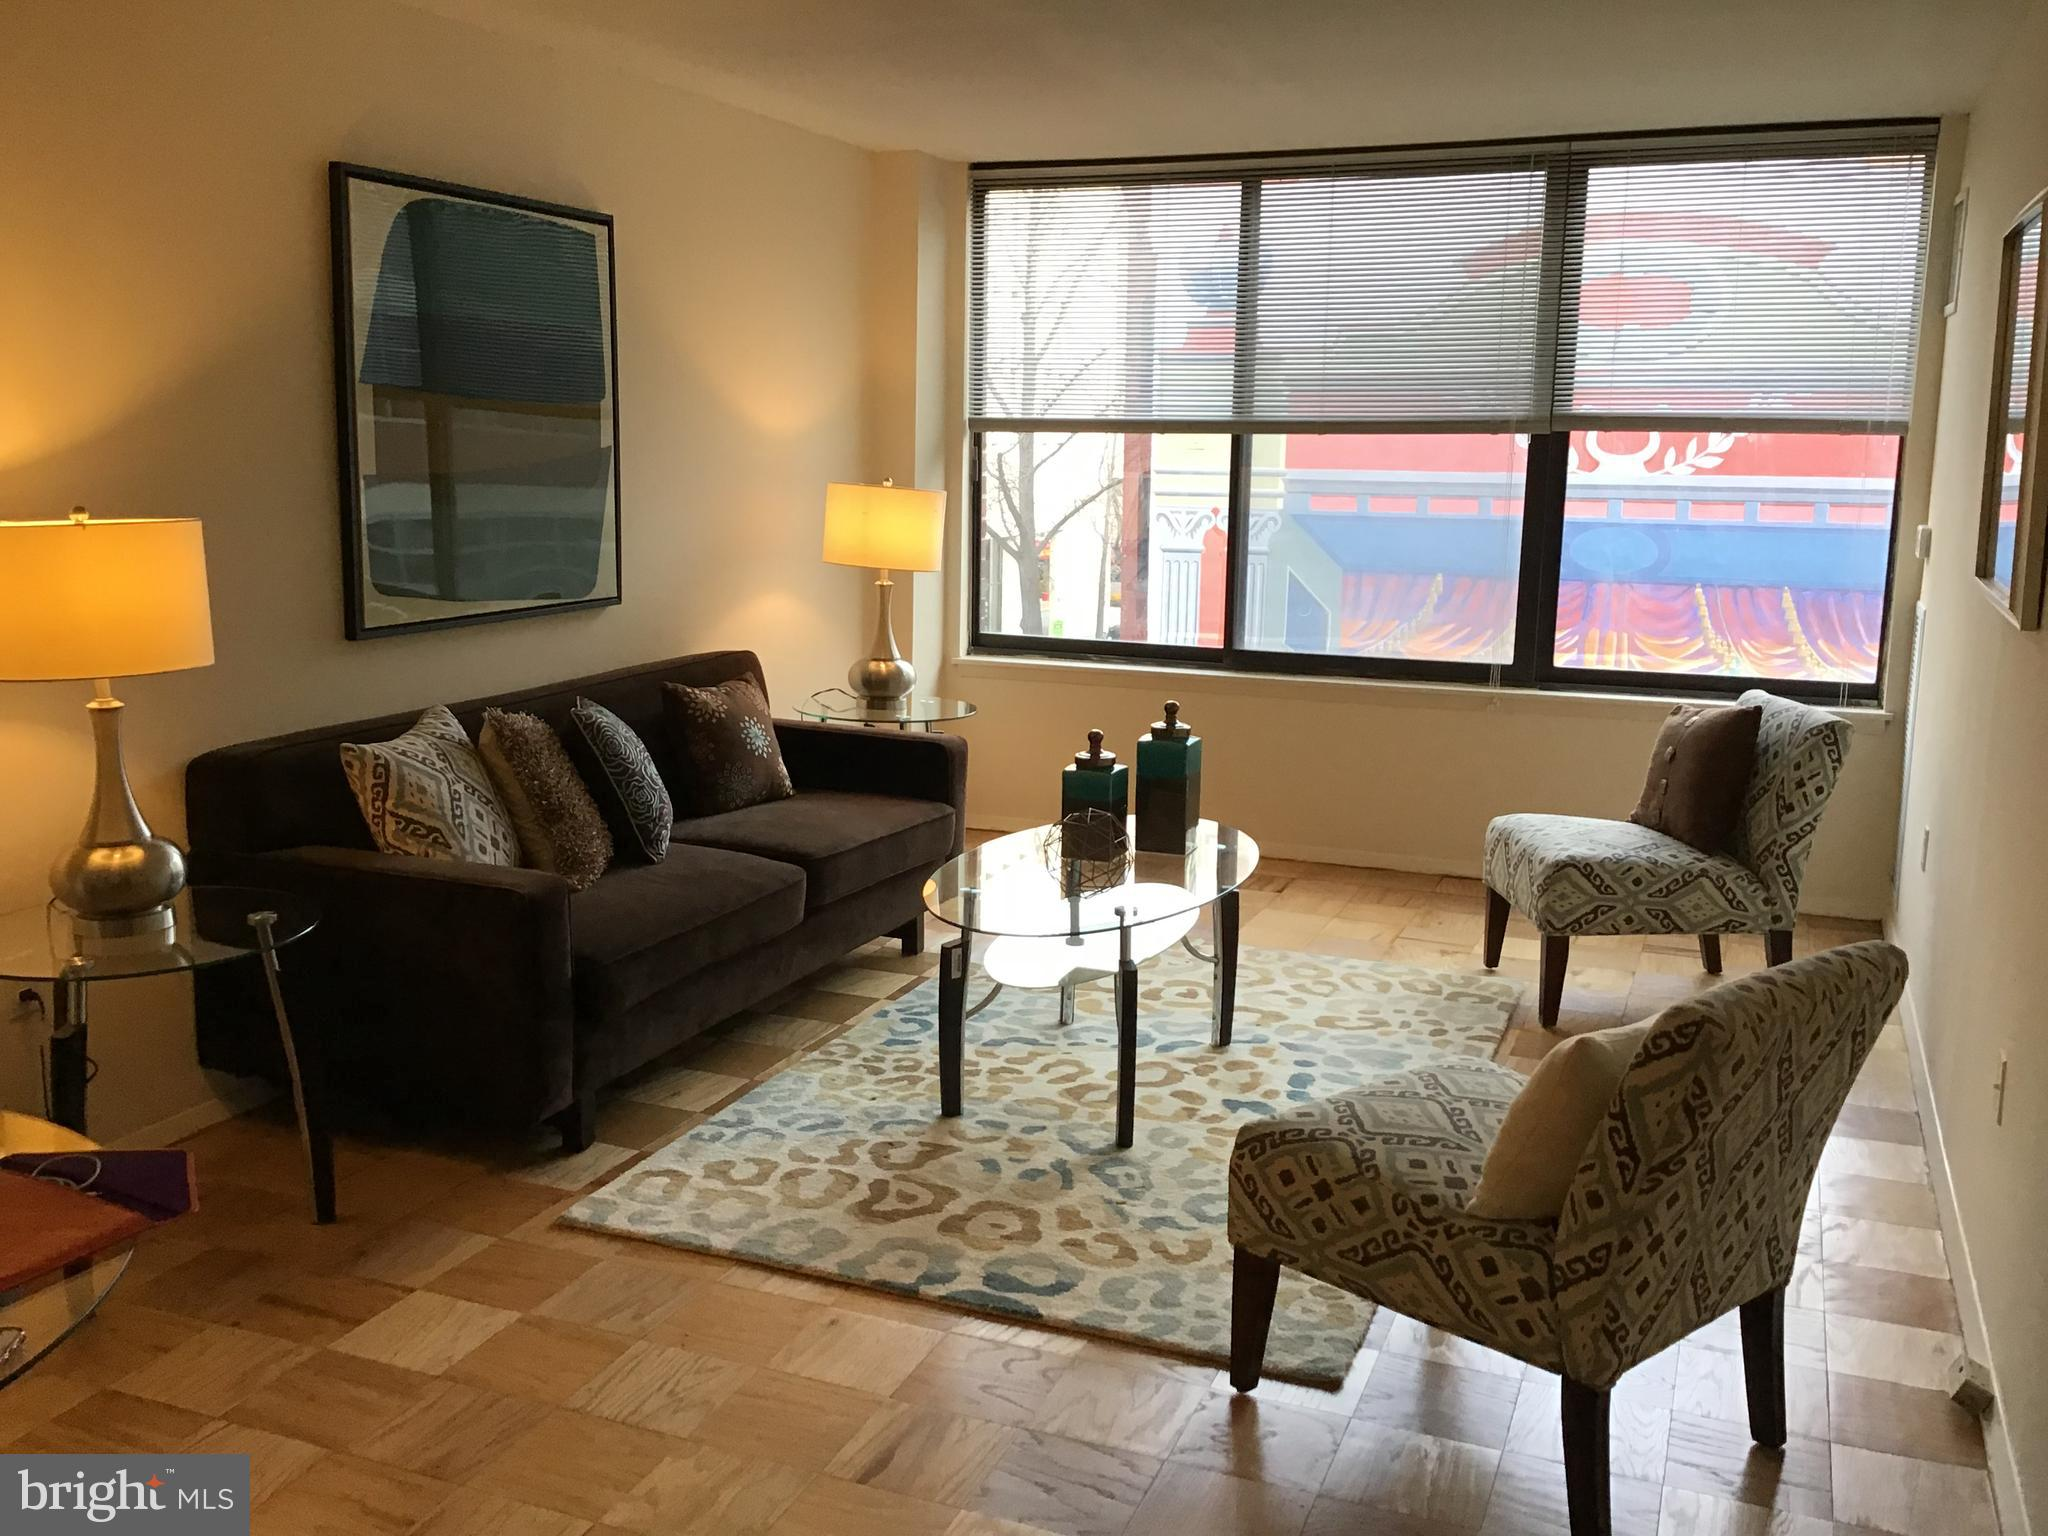 Location-Location.  This roomy one bedroom is superbly located near just about everything. This sunn